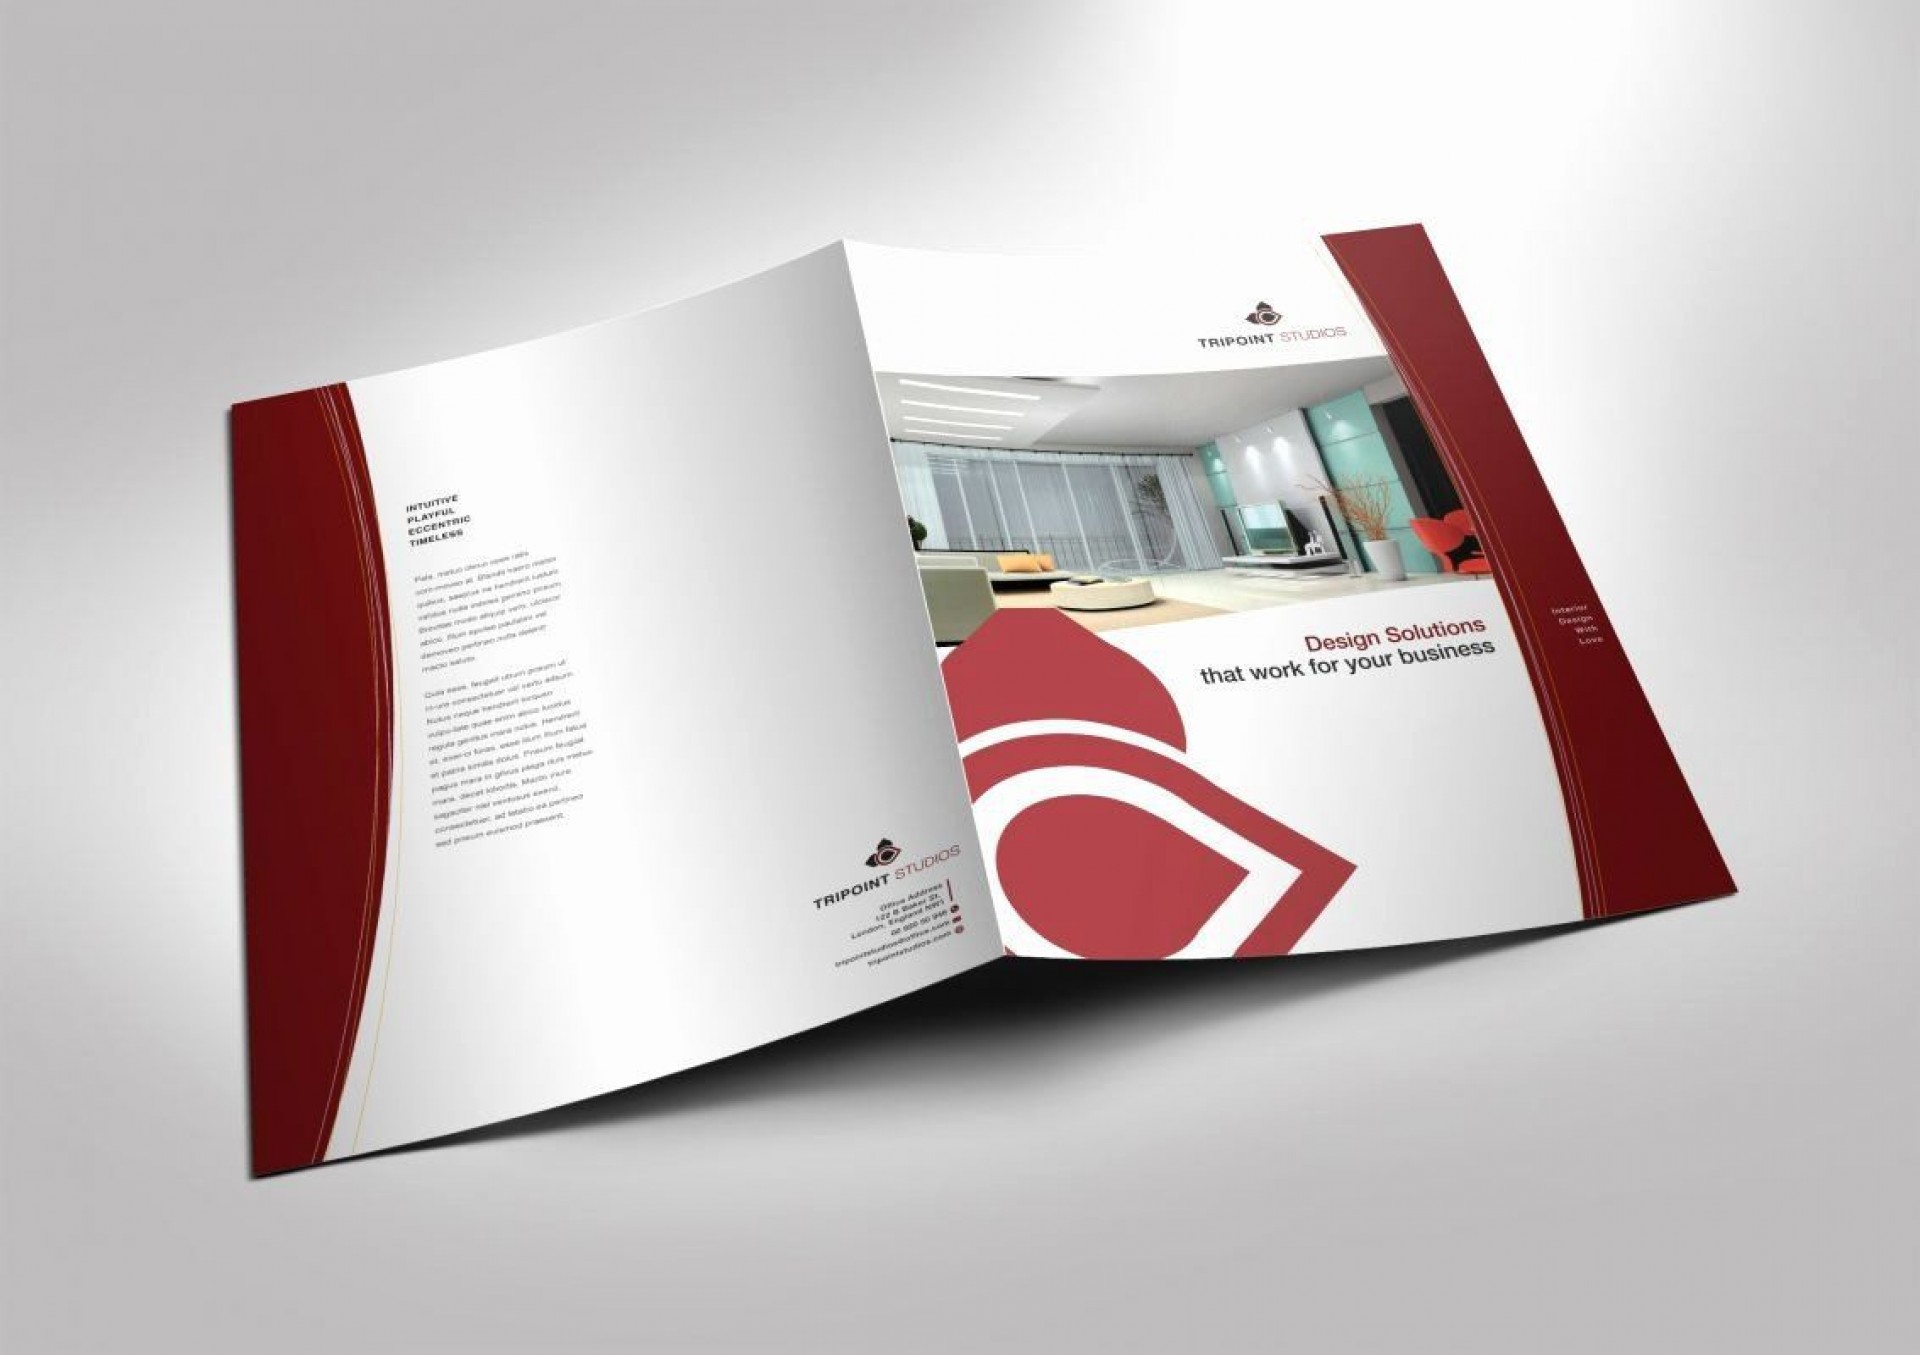 002 Astounding Half Fold Brochure Template Free Highest Quality  Blank Microsoft Word1920